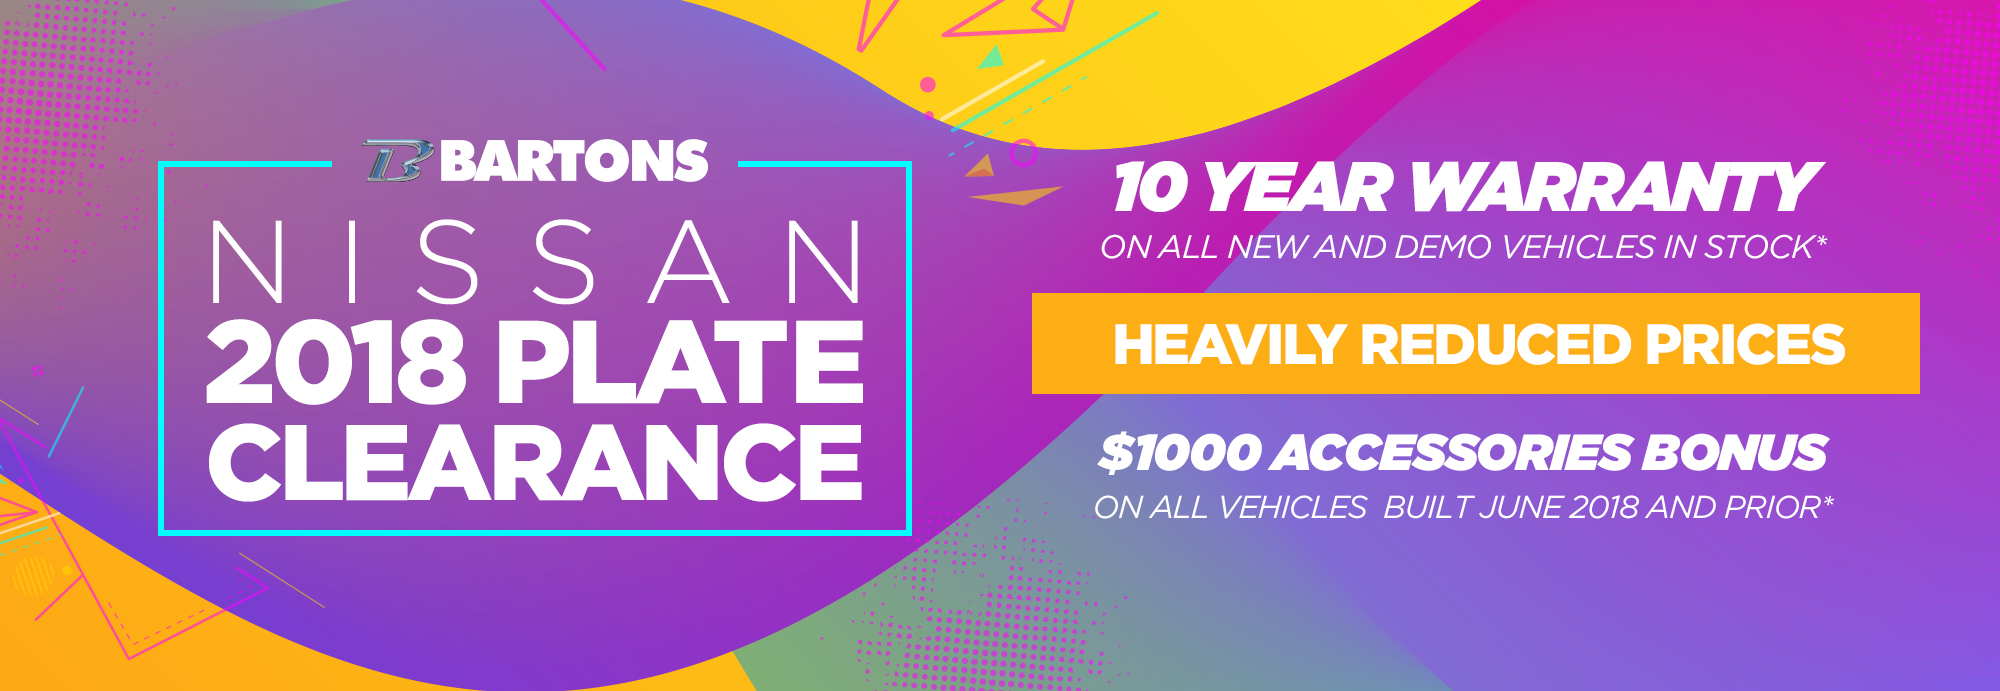 NISSANwebsitebanner_CLEVE_plateclearance2018